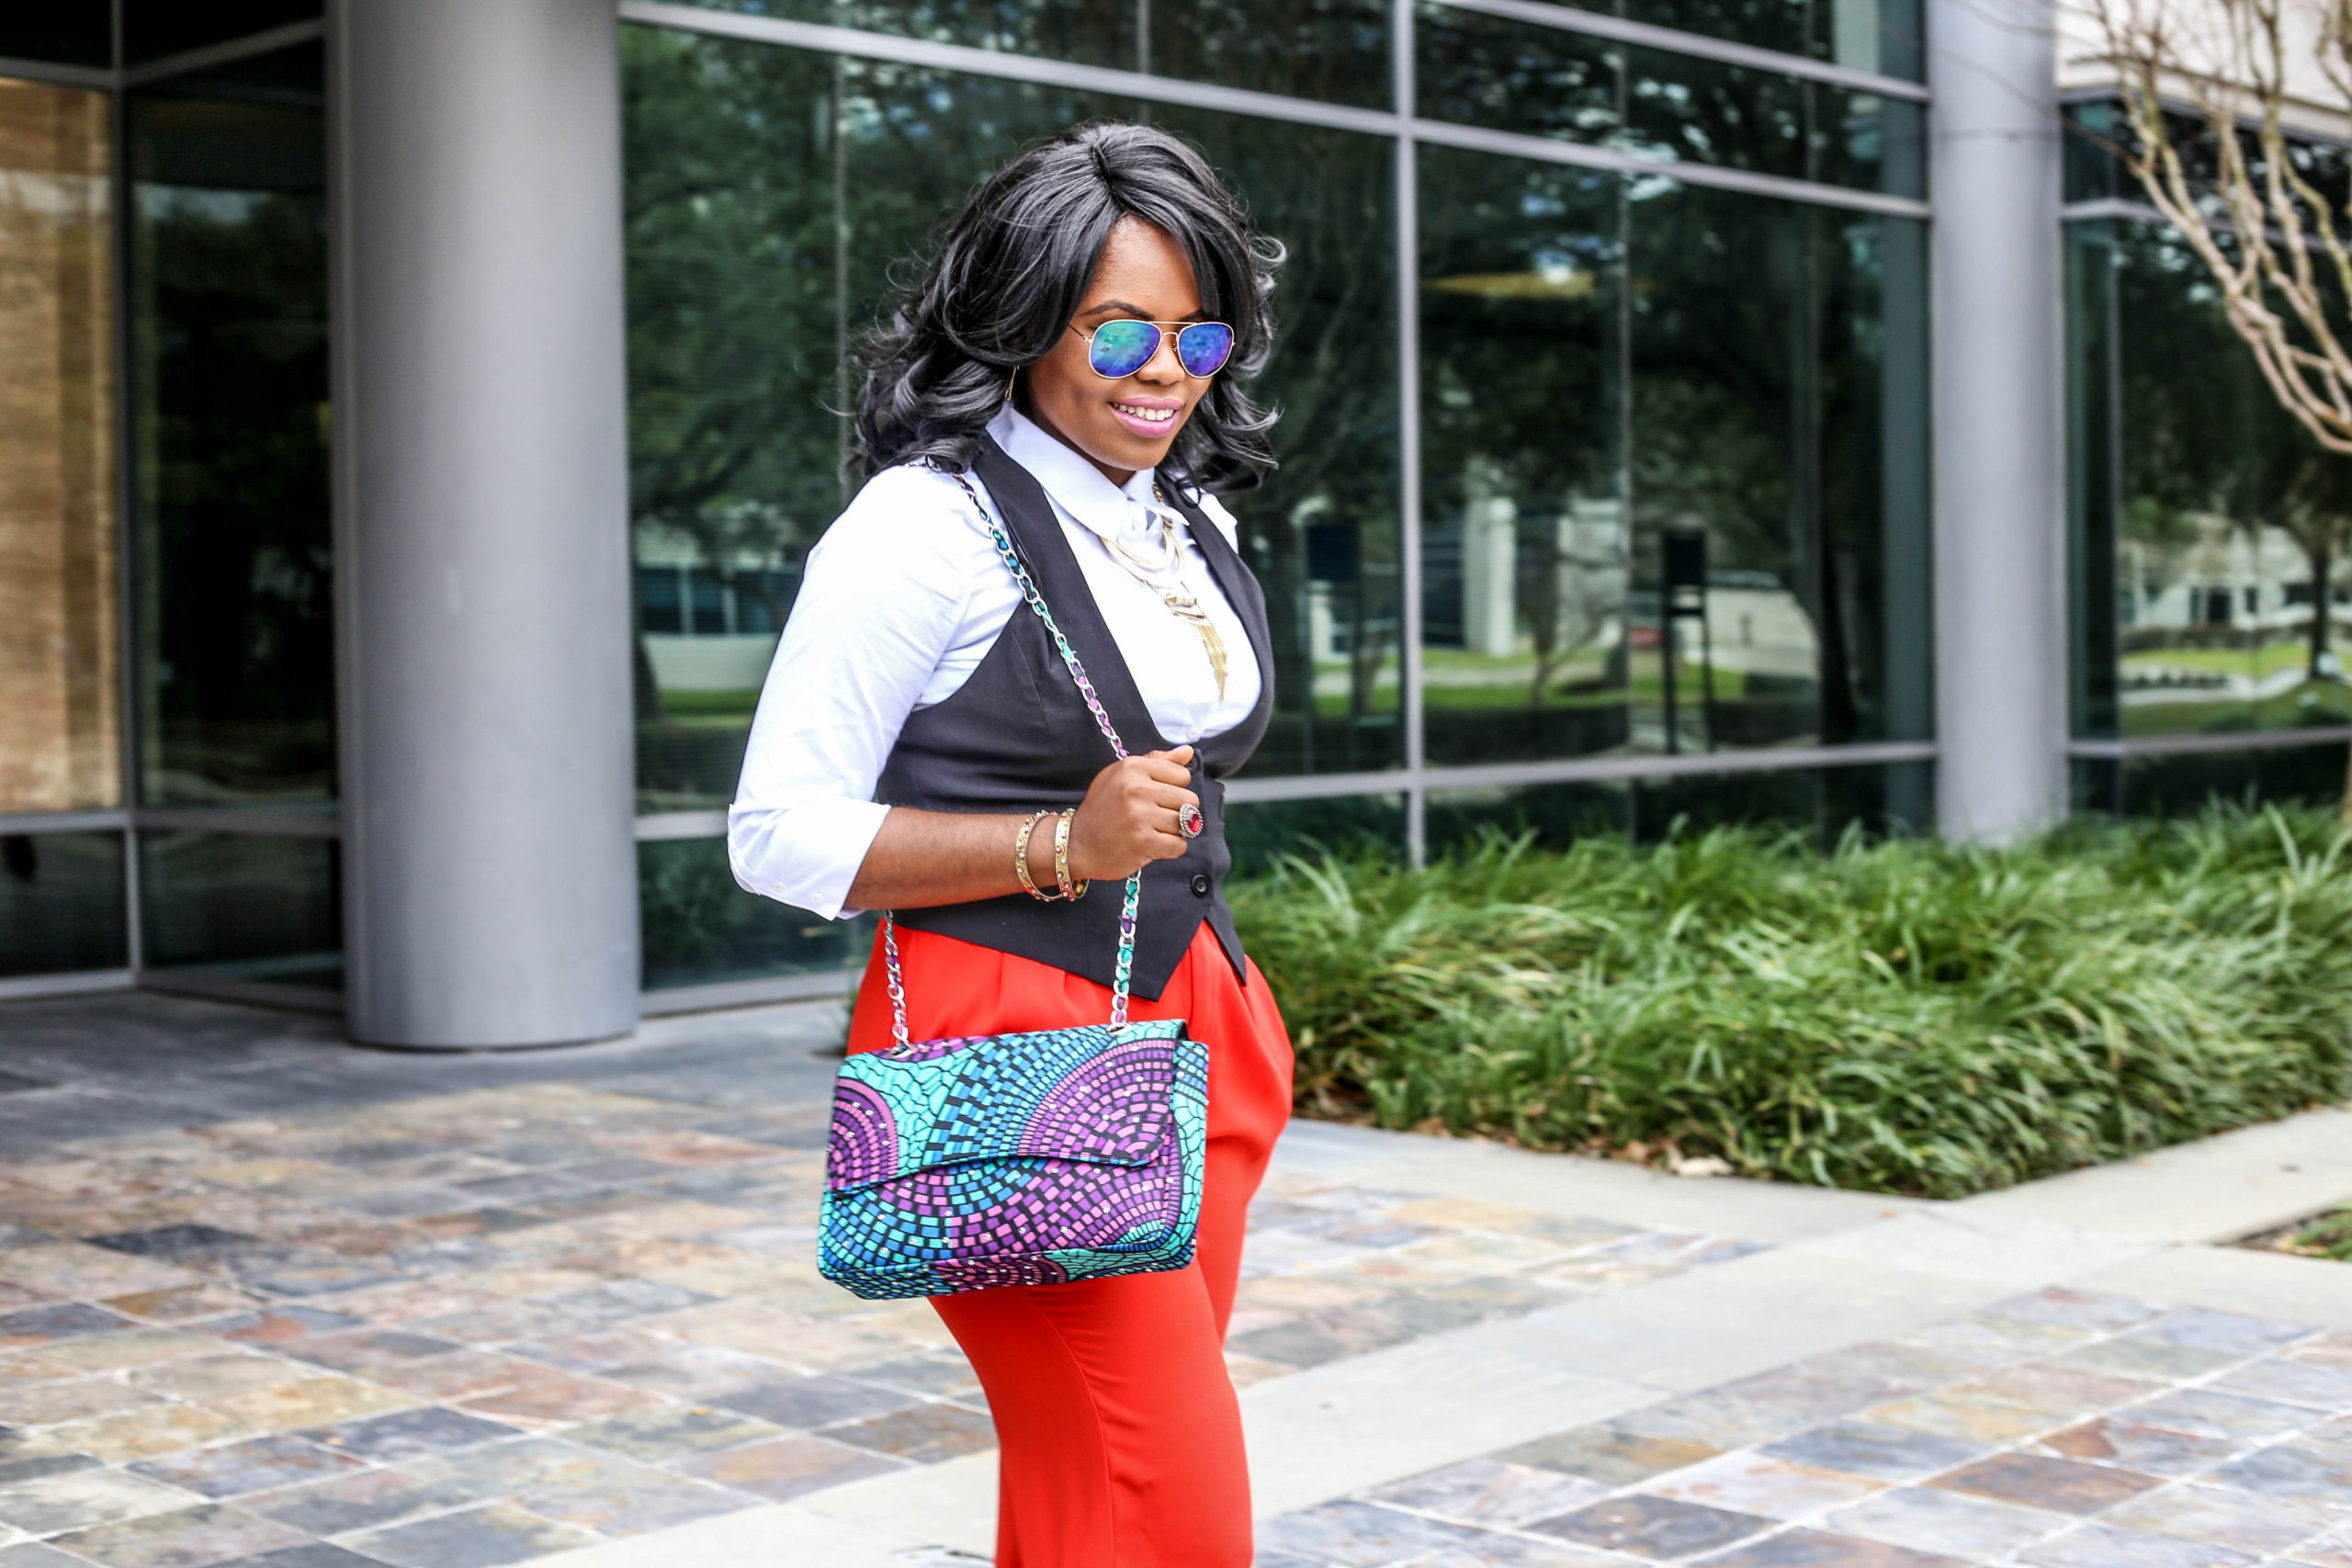 Red Pants + White Shirt + Black Vest = OOTD Alice + Olivia Nordstrom Wide Leg Pants 3reecs Teal Purple Rock Stud African Print Dashiki Ankara Handbag Black White Uvana Madison Shoedazzle Shoes Agaci Sunglasses Gold Statement Necklace